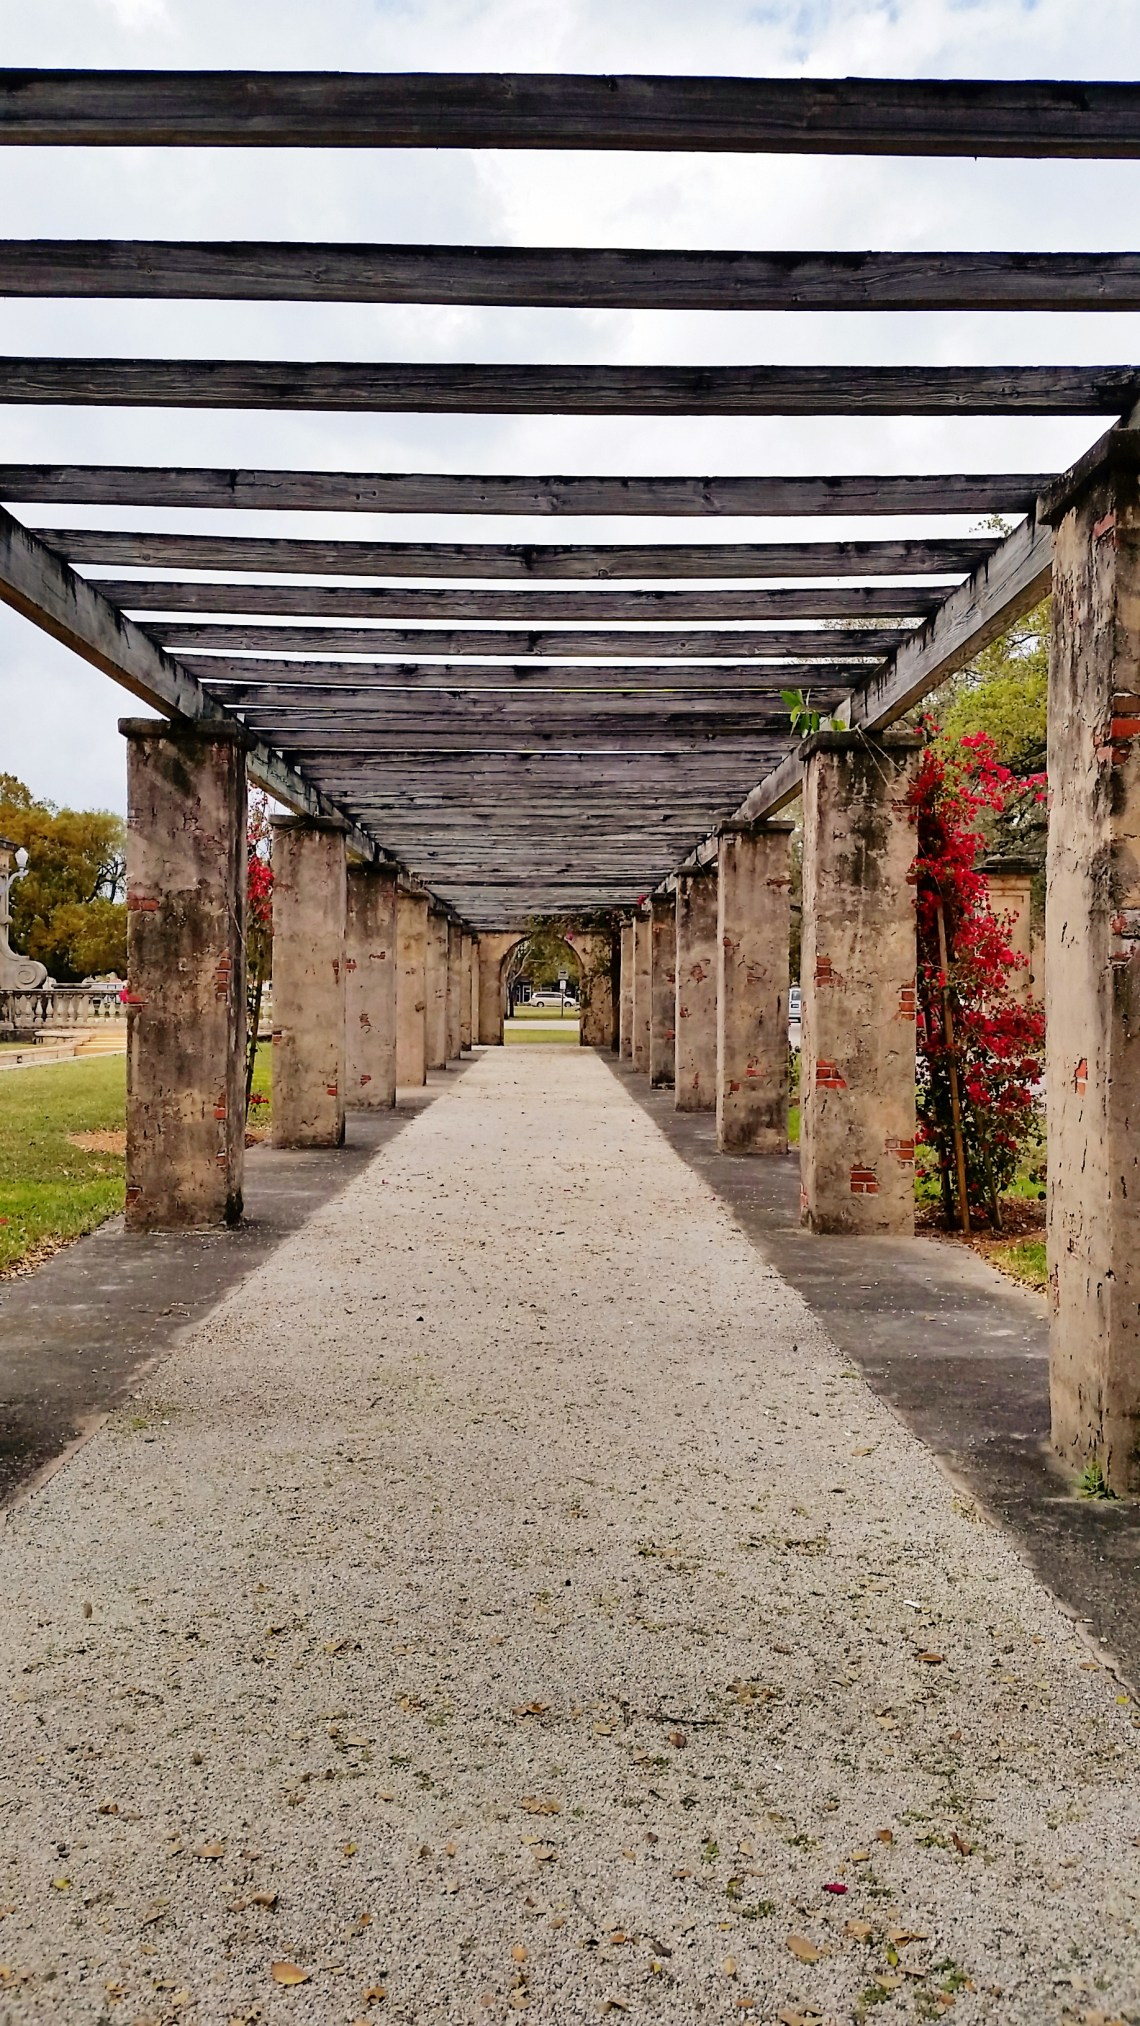 The Coral Gables Prado Entrance is another historic site that is a favorite for photographers and couples looking for a romantic setting for their engagement photos.